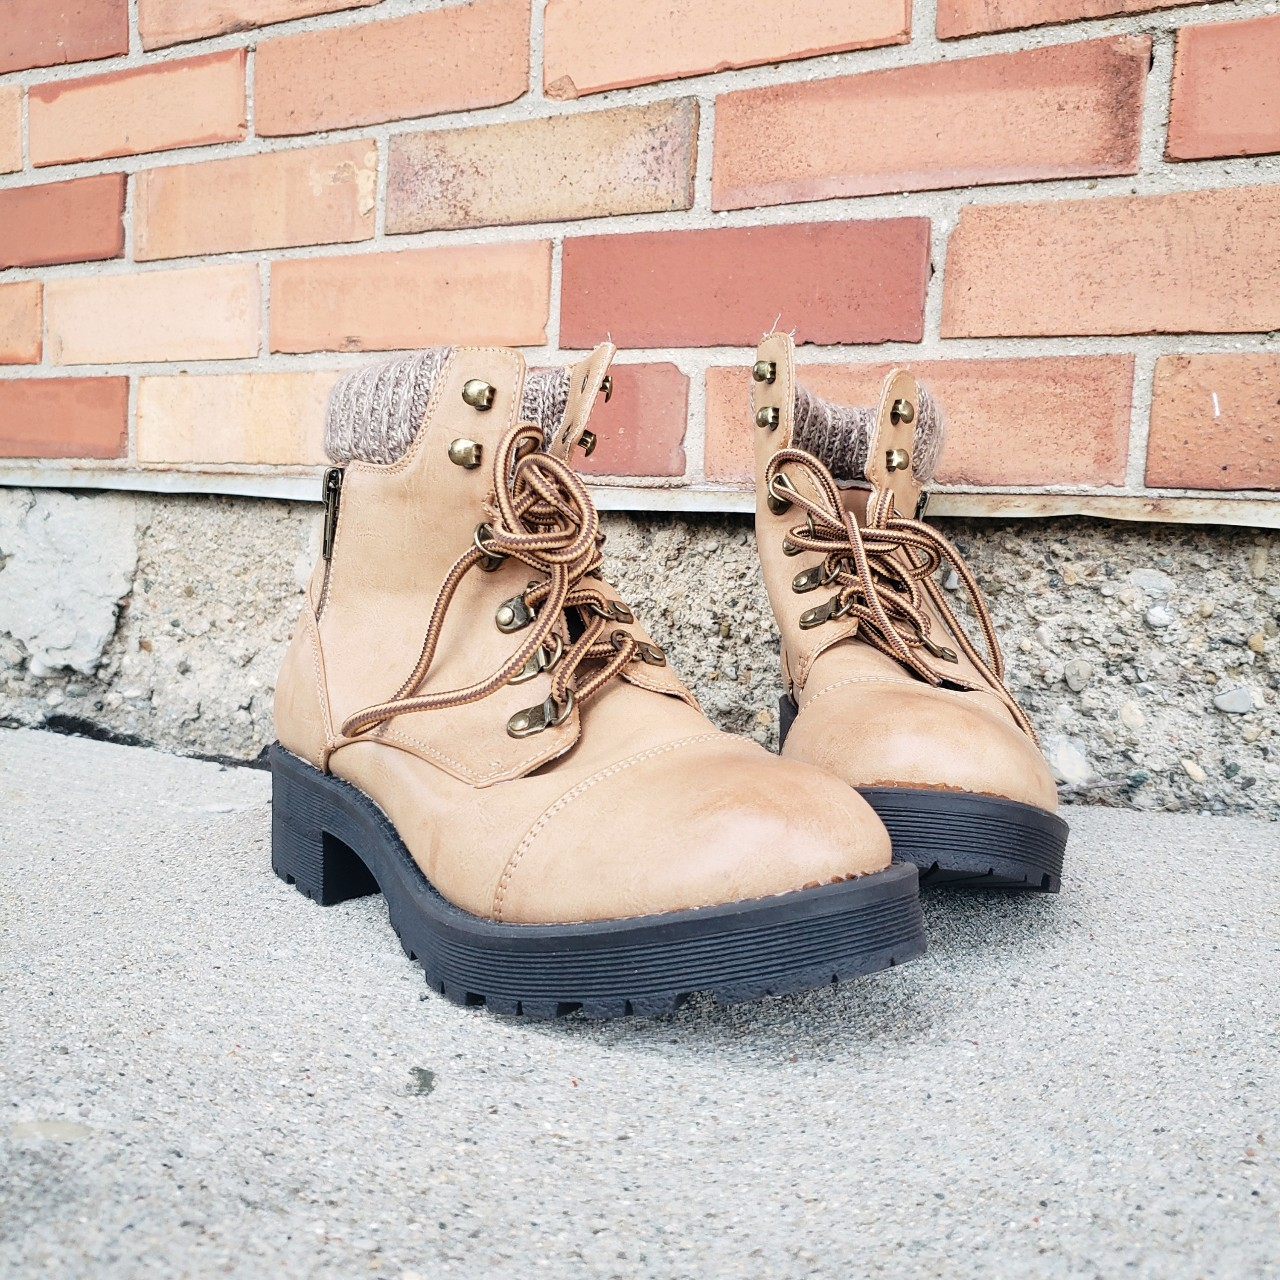 Brown/tan winter boots with cloth